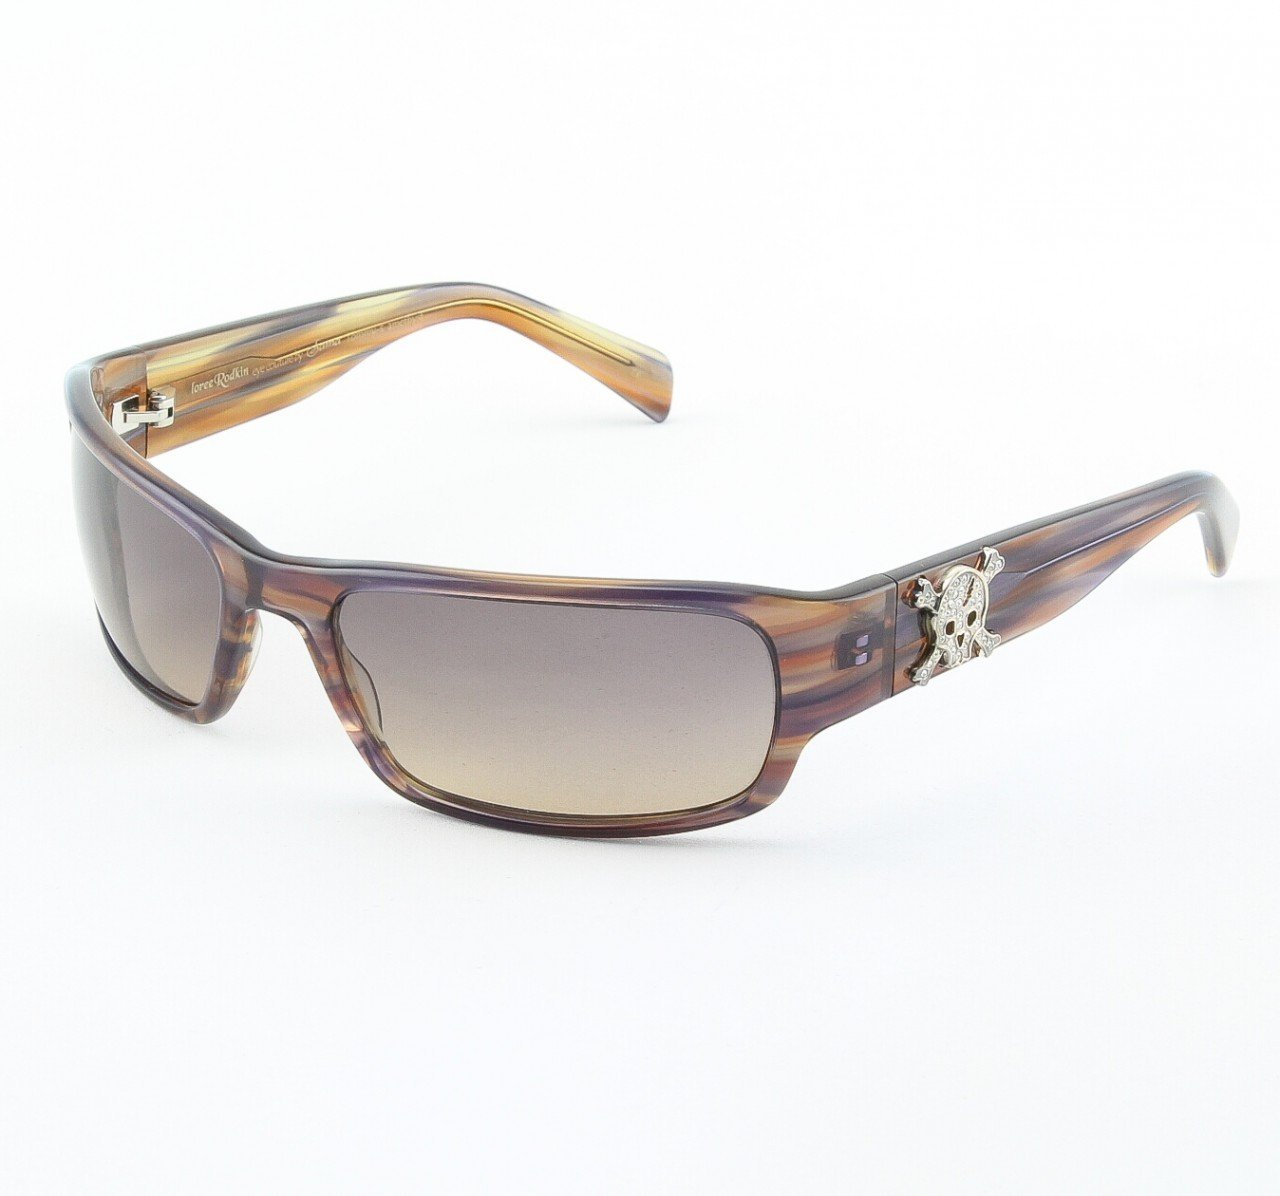 Loree Rodkin Tommy-MX2 Sunglasses by Sama Col. Amethyst with Gray Lenses and Sterling Silver